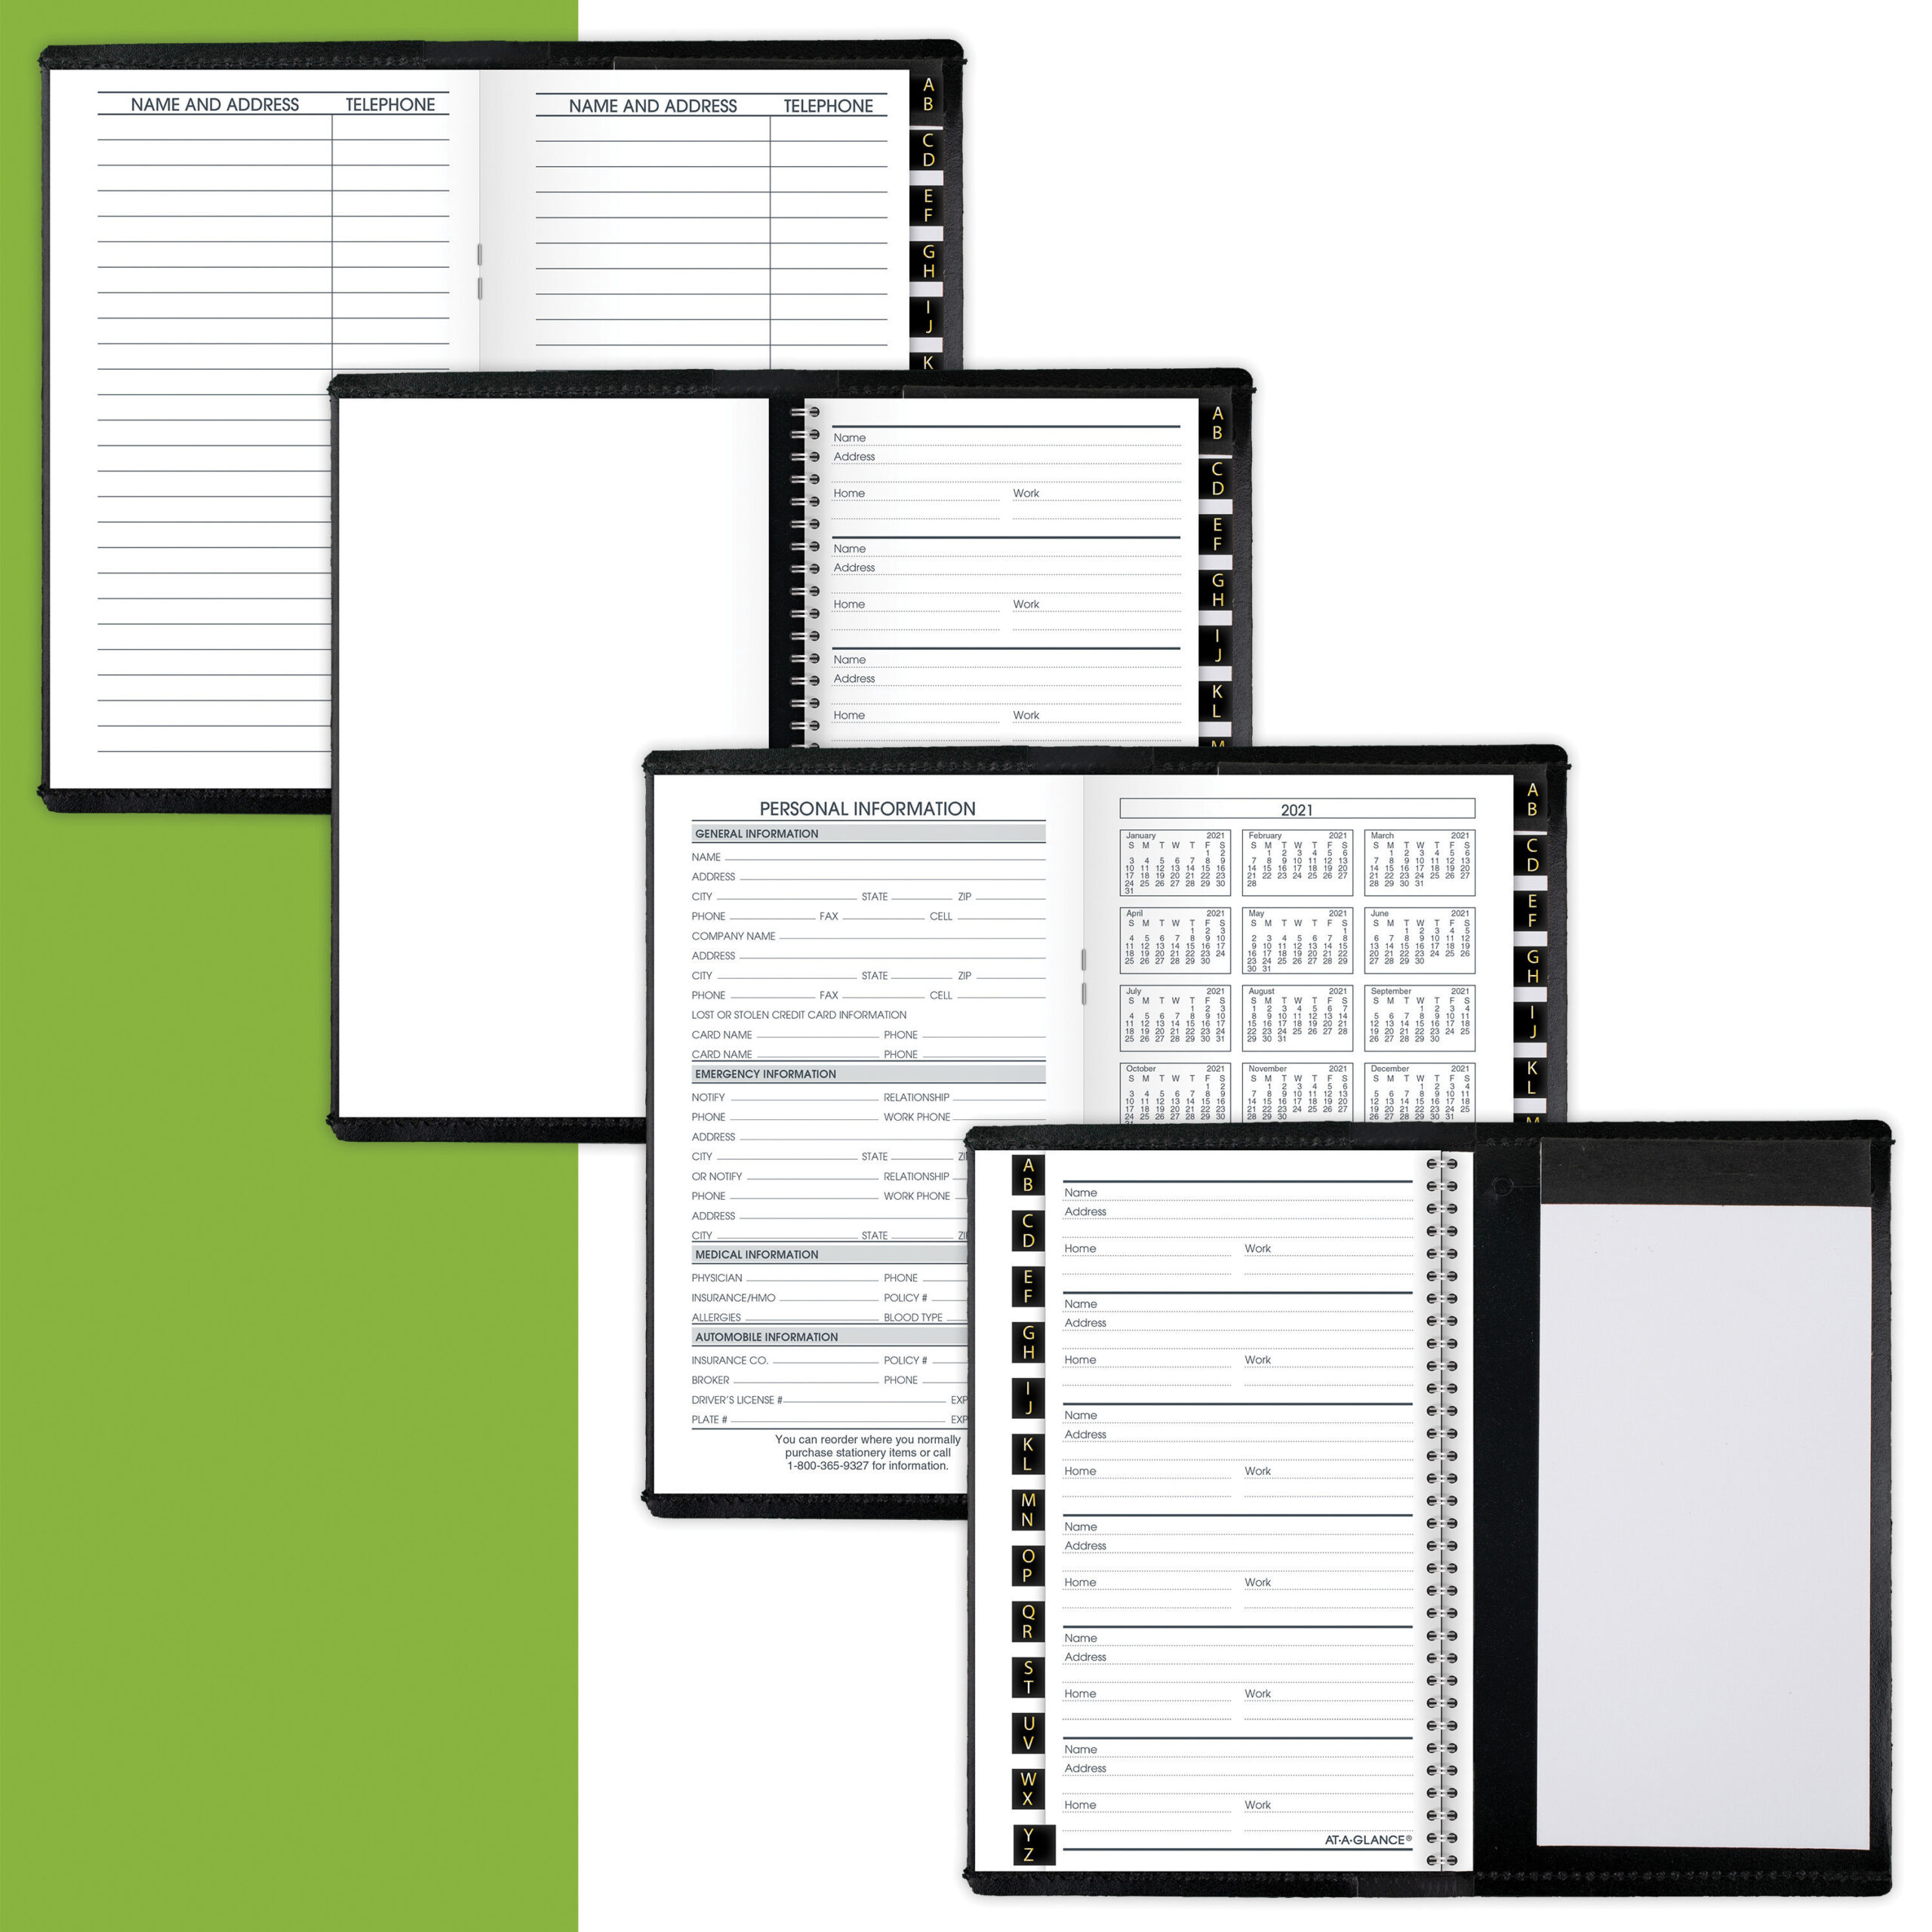 """At-A-Glance Deluxe Monthly Pocket Planner - Monthly - 1.1 Year - January  2021 Till January 2022 - 1 Month Double Page Layout - 3 1/2"""" X 6 1/8"""" Sheet intended for Planner 2021: Year Monthly Pocket"""